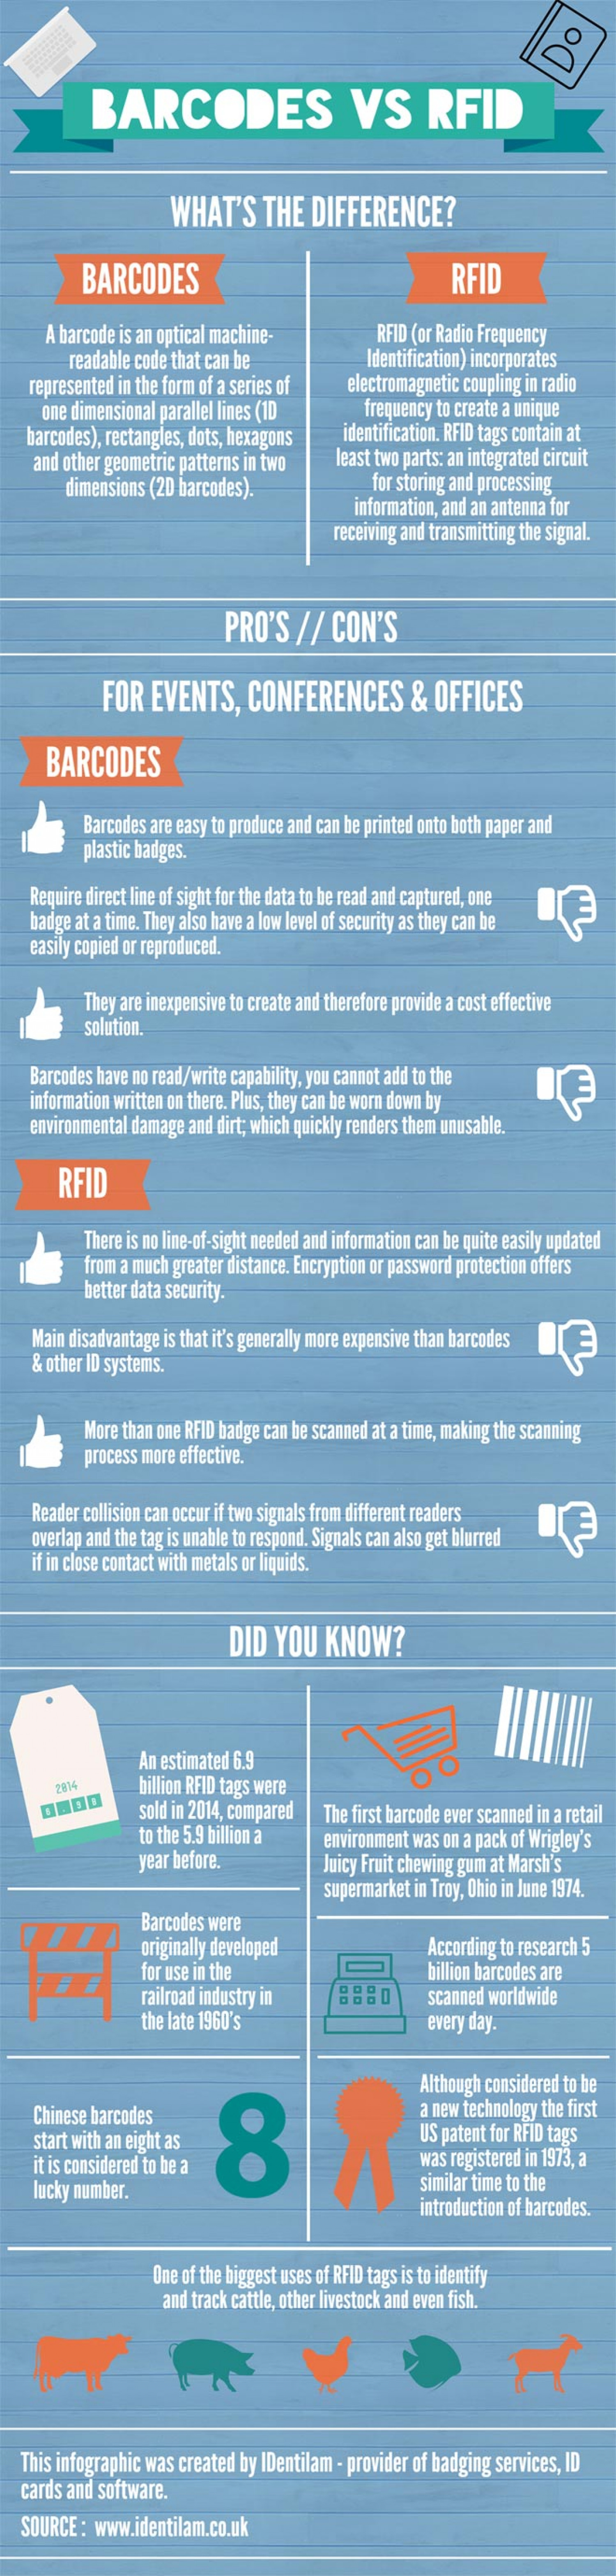 Infographic: Barcodes vs RFID Infographic